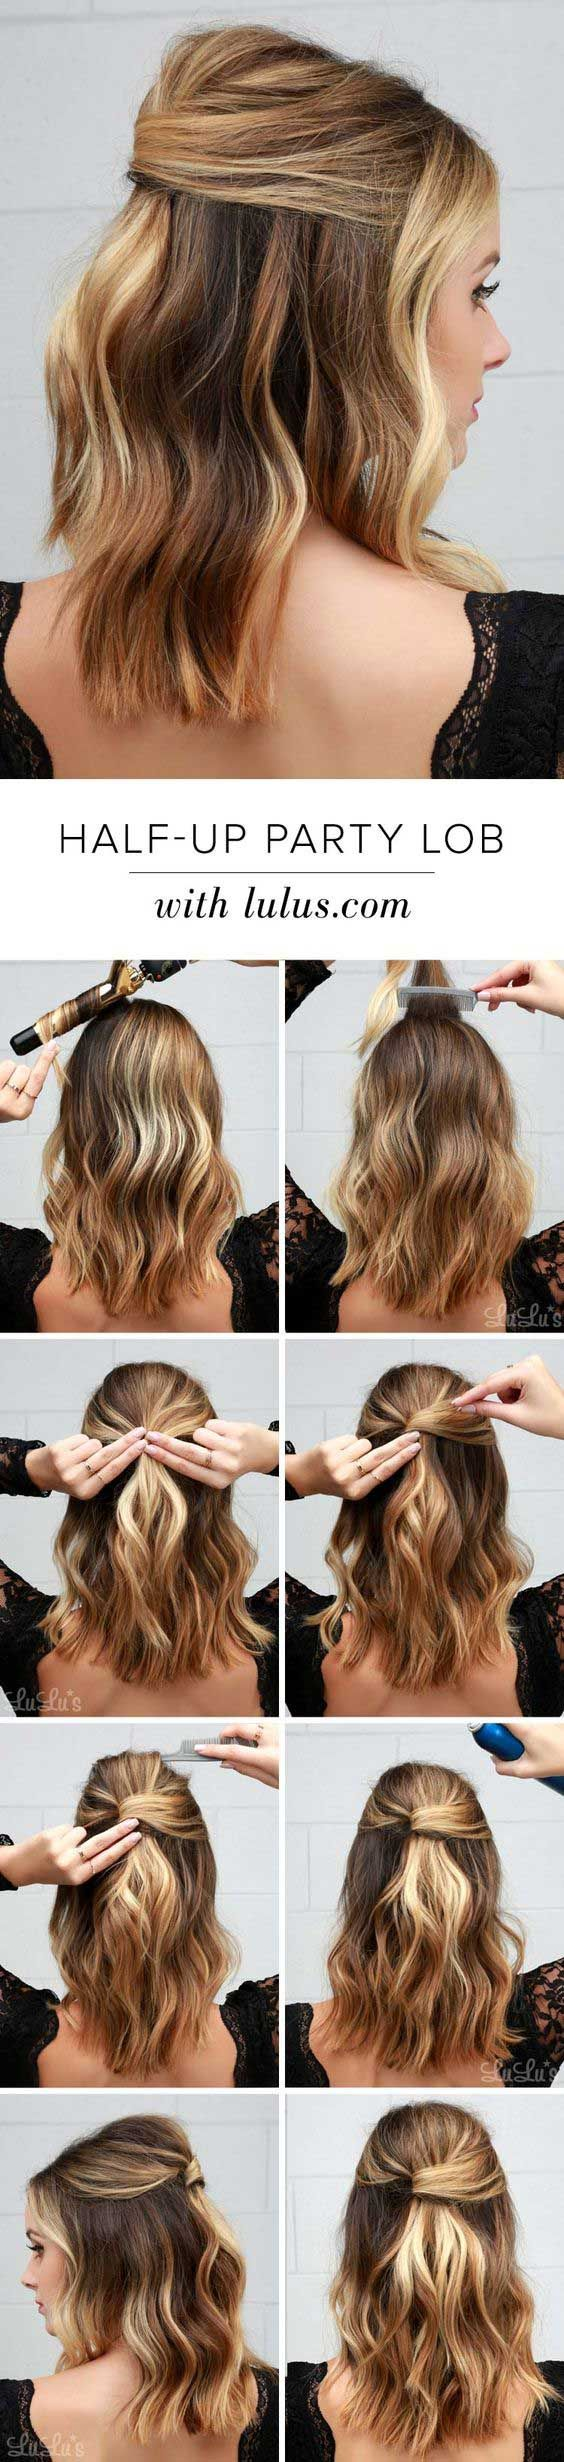 Pin by kylie tregea on hair ideas pinterest messy bangs